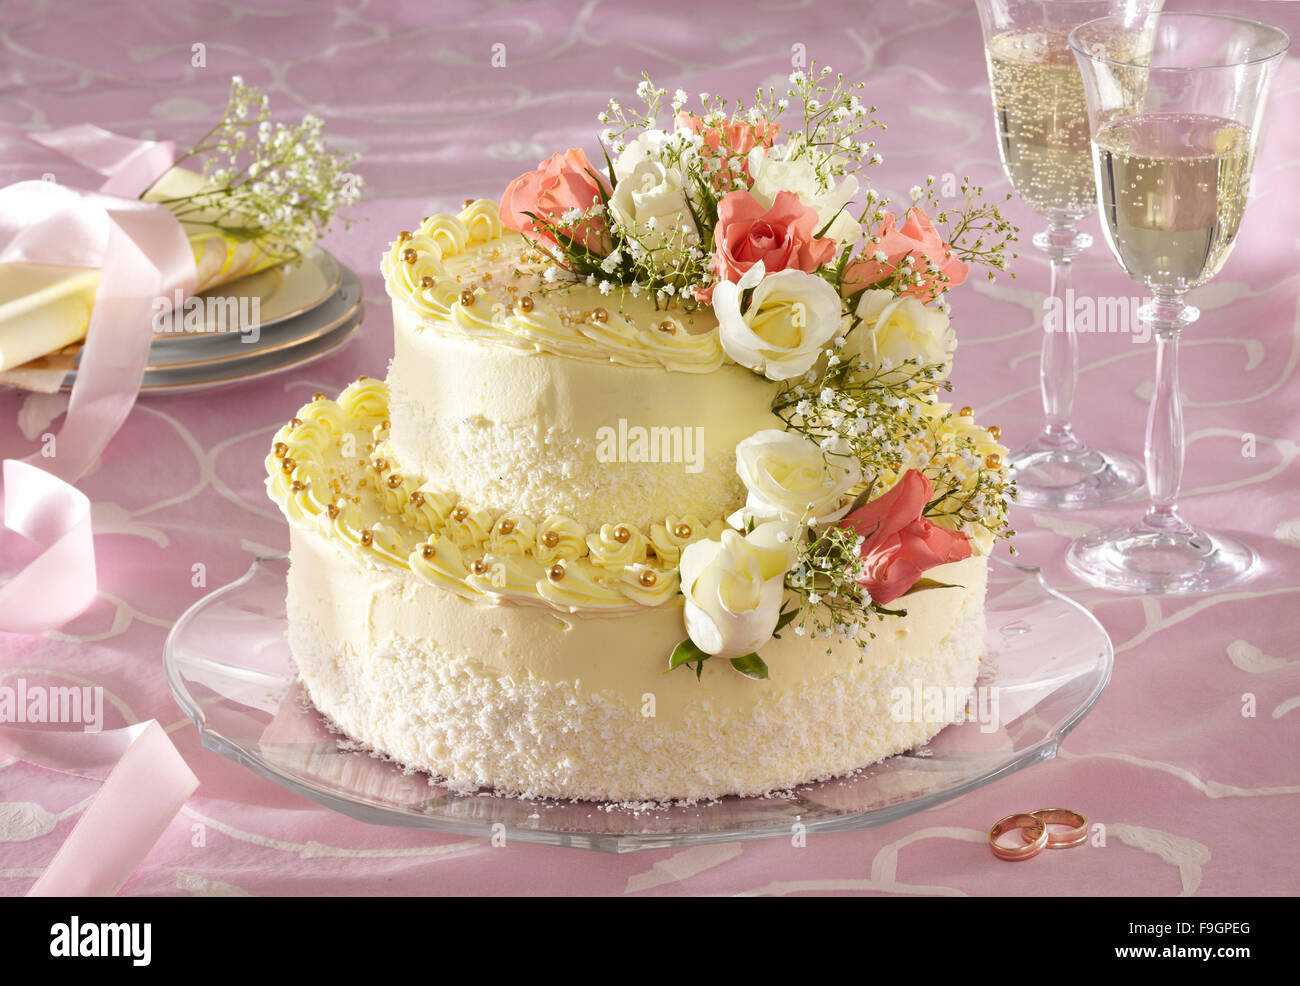 Two Layer Wedding Cake Step By Step Stock Photos & Two Layer Wedding ...